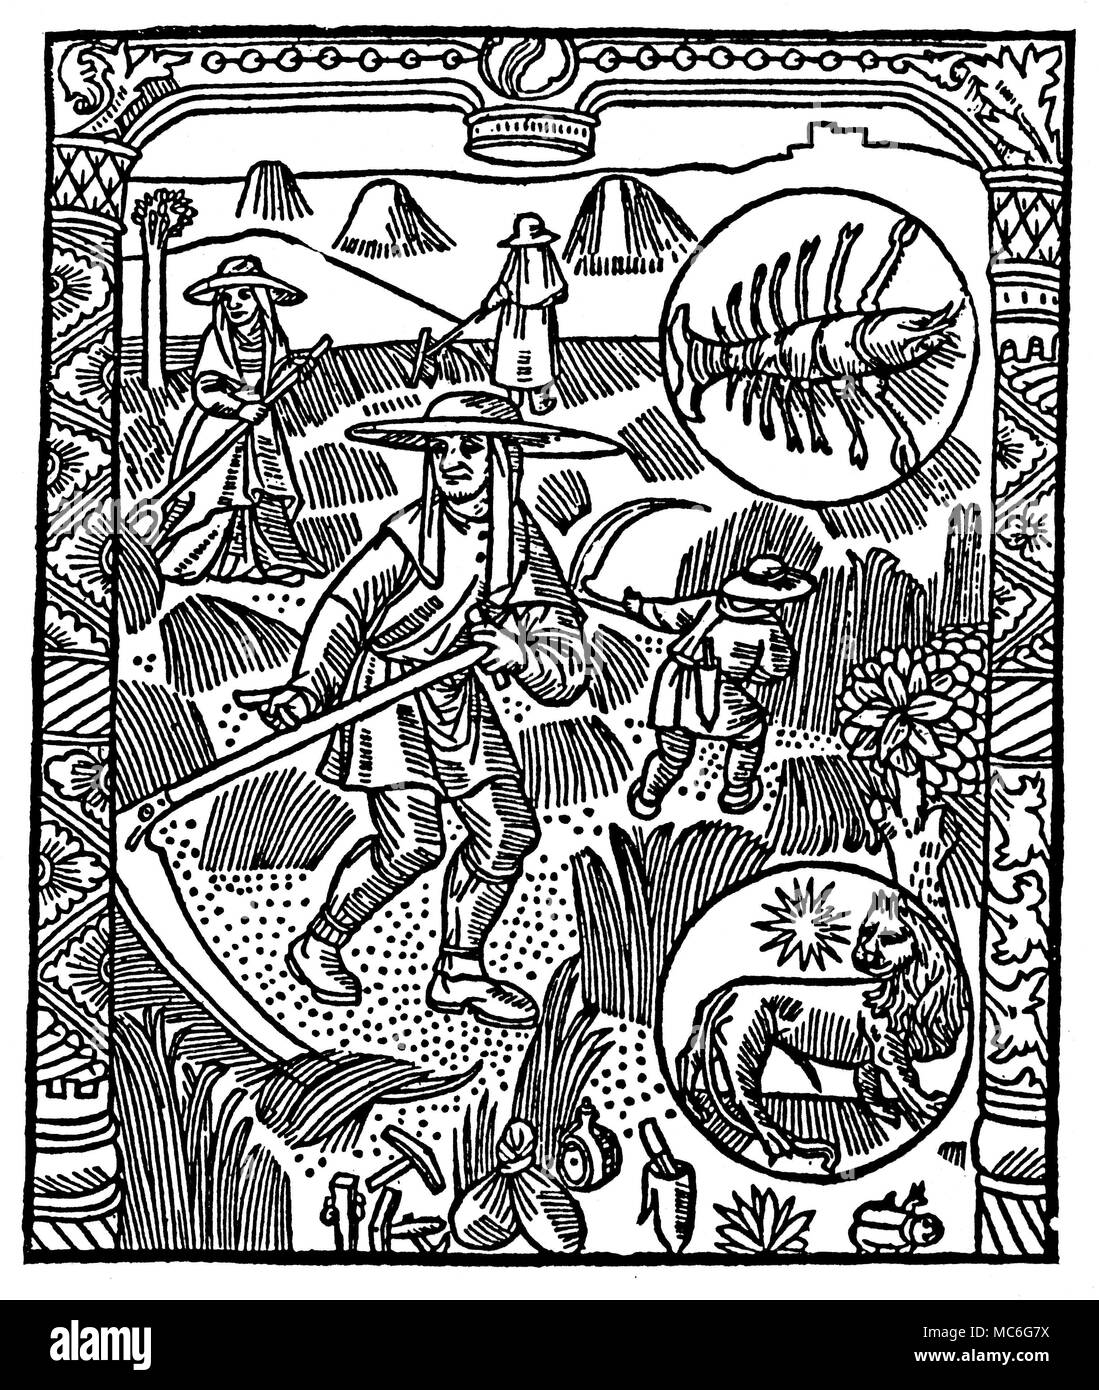 MONTHS - JULY - CANCER & LEO Woodcut depicting cutting grass, and hay making.   The top roundel is the zodiac image for Cancer the Crab, here represented in the form of a crayfish much favoured by the mediaeval astrologers;  the bottom roundel represents Leo the Lion.  From Le Grant Kalendrier & compost des Bergiers avecq leur Astrologie, circa 1500. - Stock Image